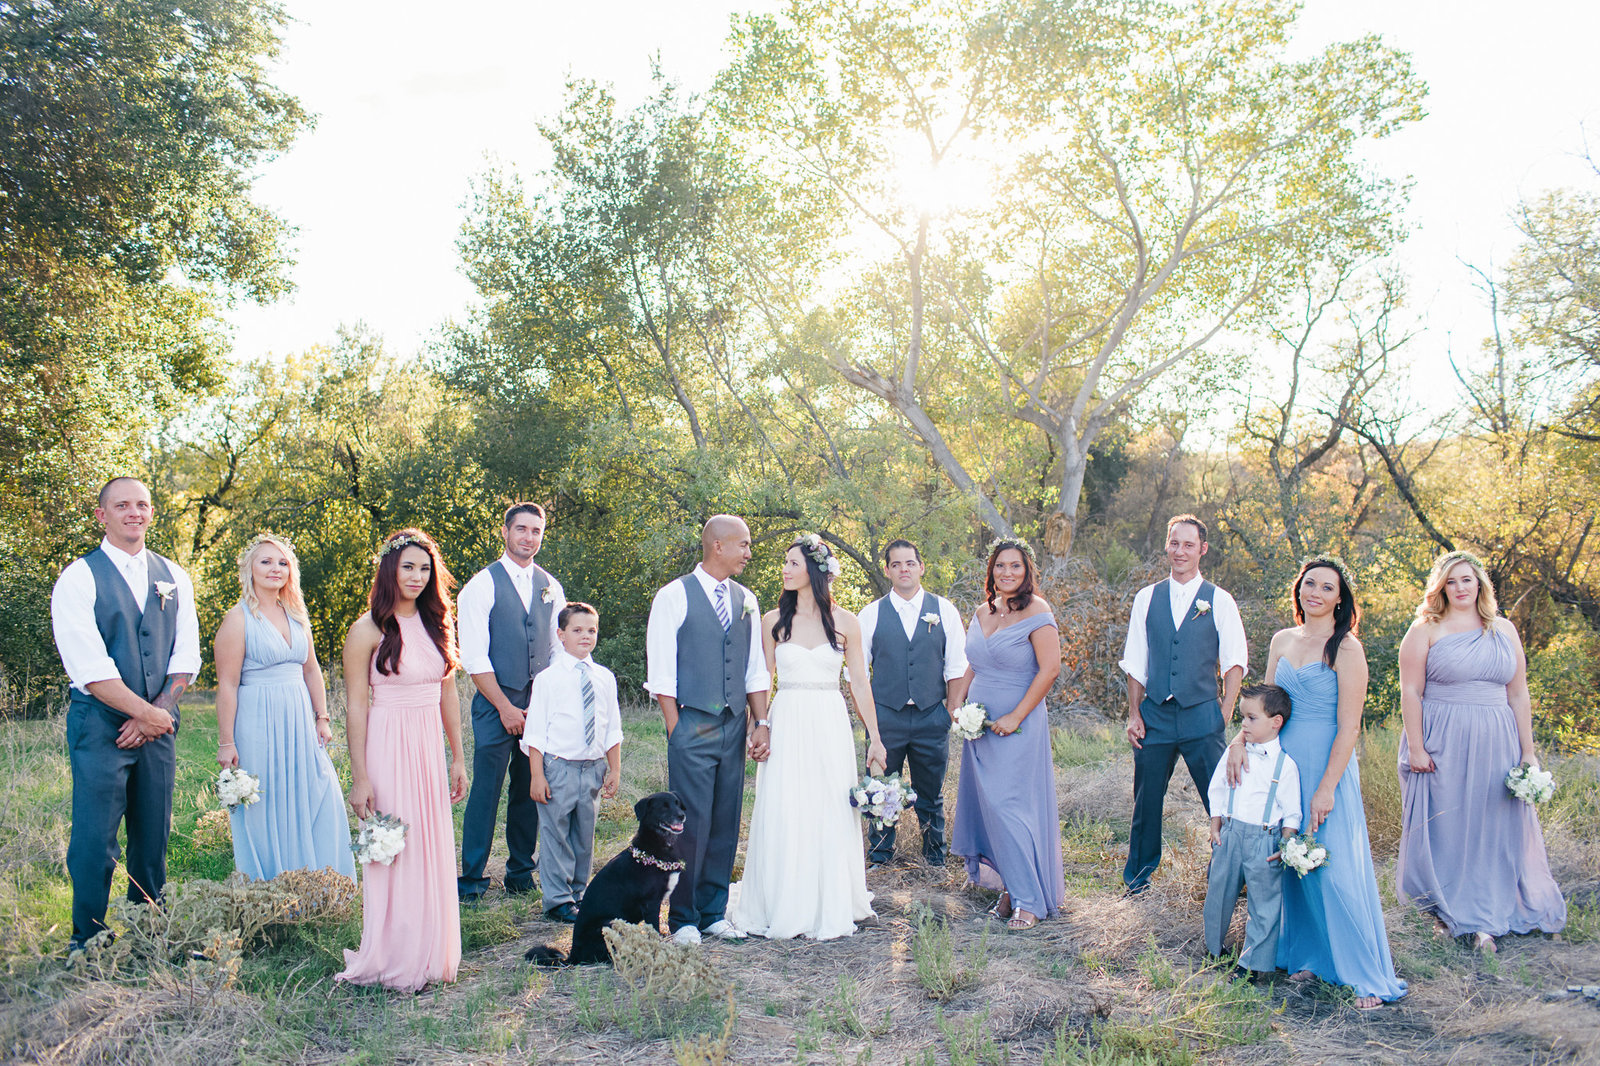 Owl-Creek-Farm-Wedding-64